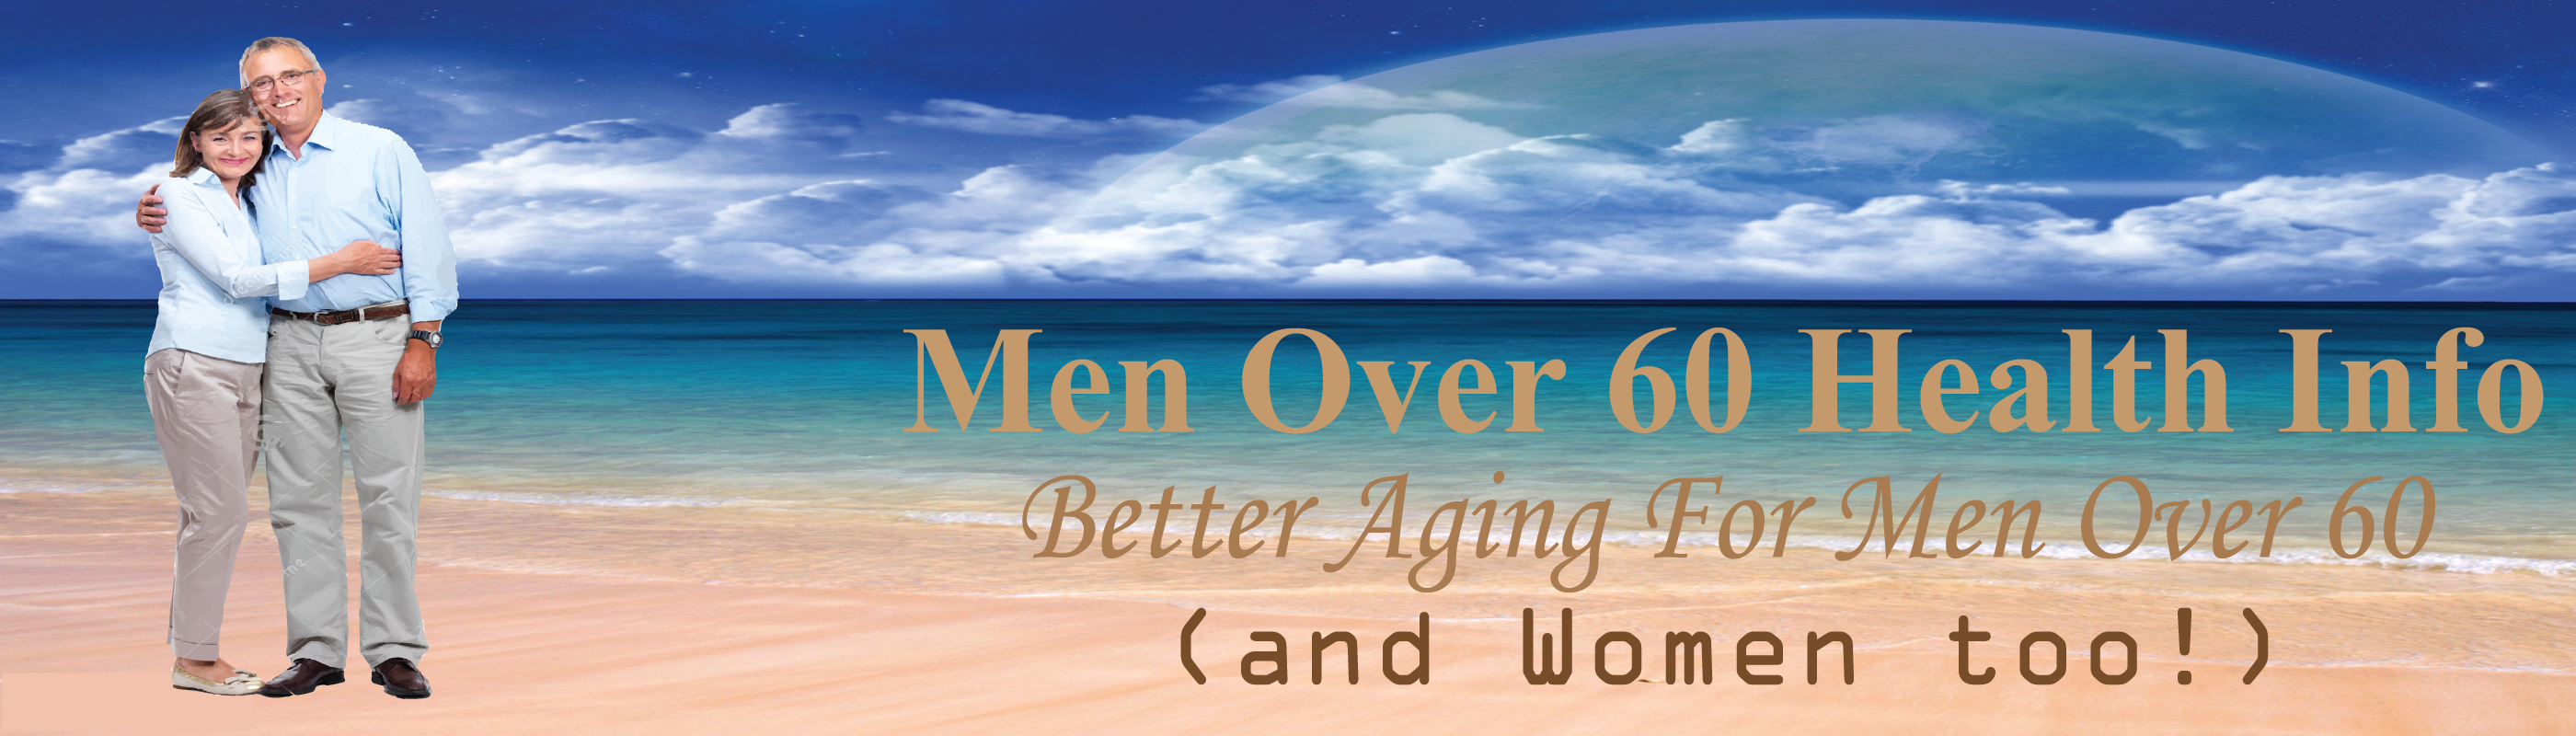 Over 60 Health Info - Health Information For Men Over 60